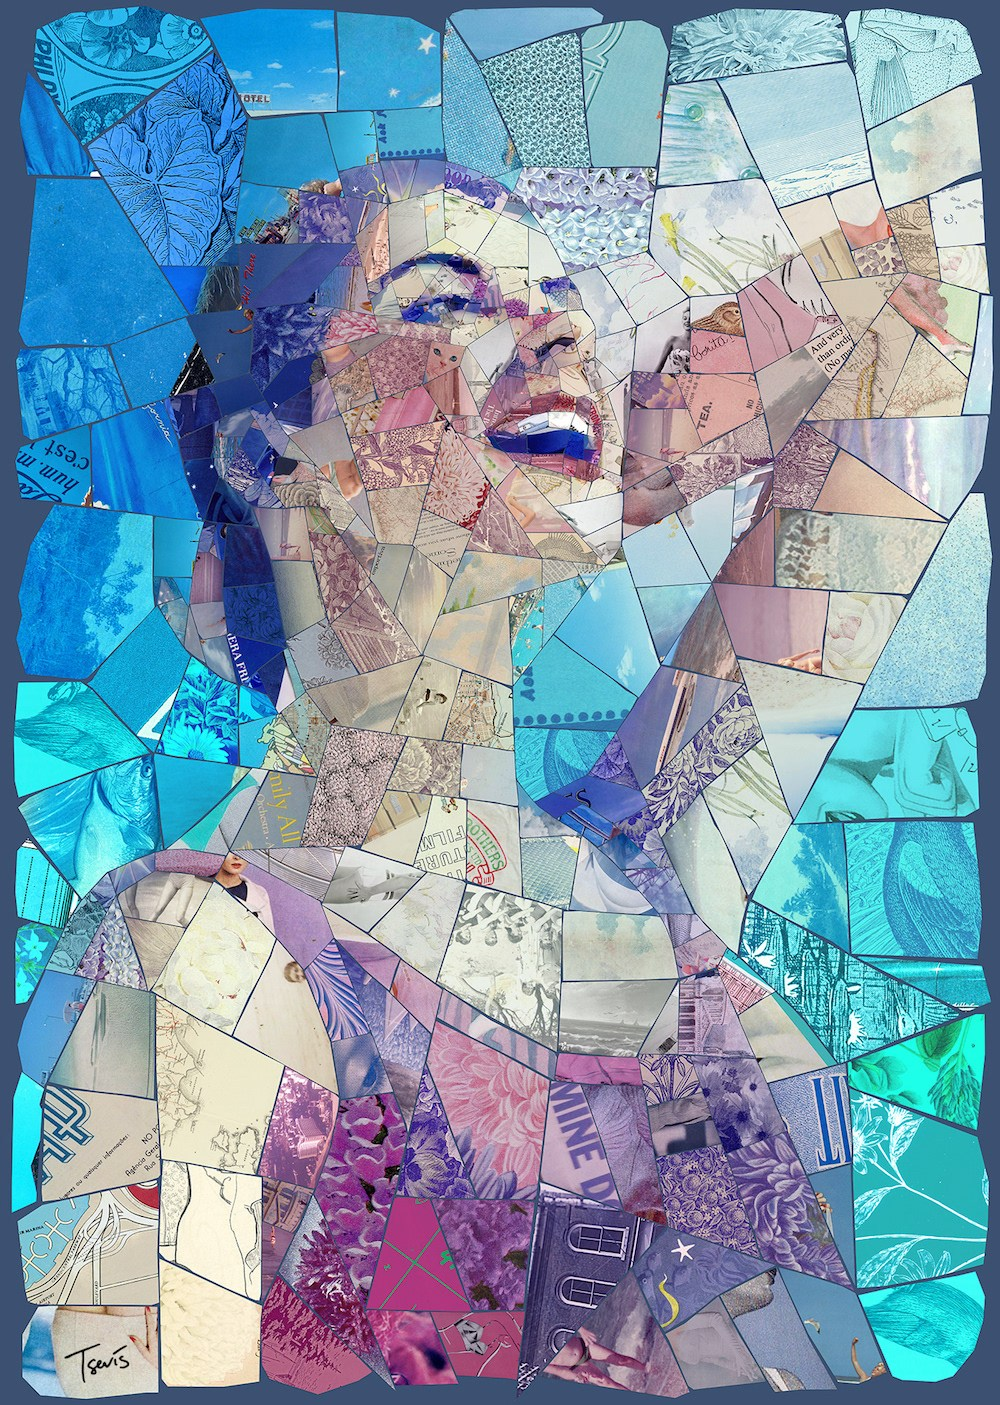 Charis-tsevis-tetro-collages-4